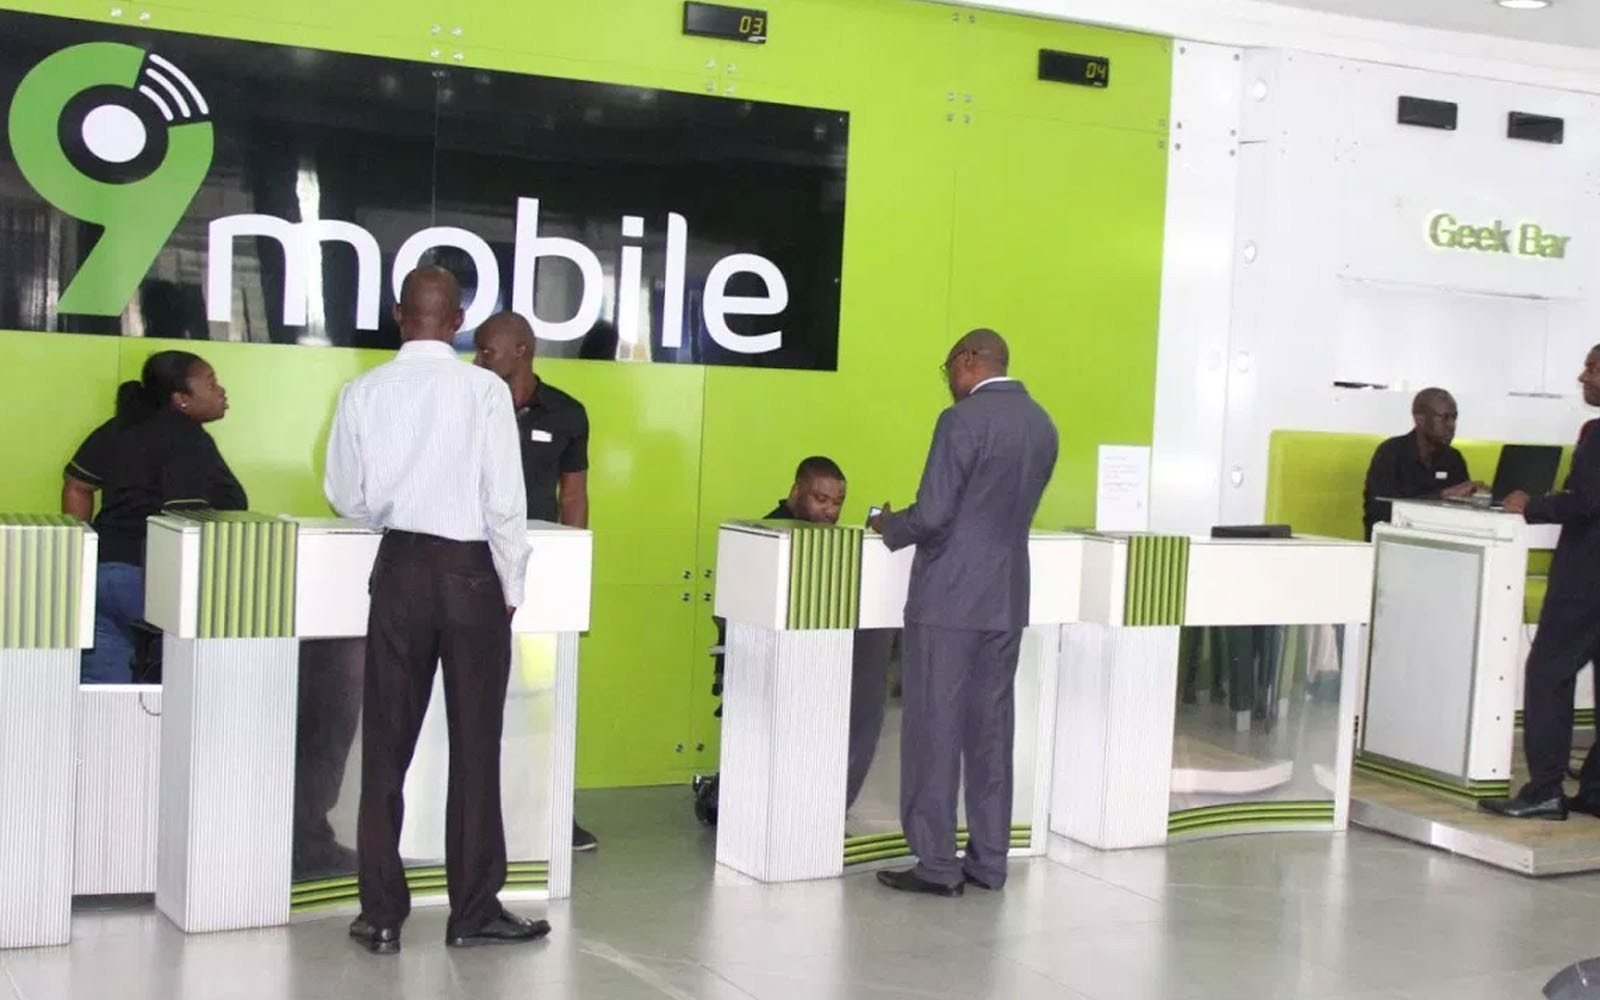 9mobile reaffirms commitment to keep Nigerians connected